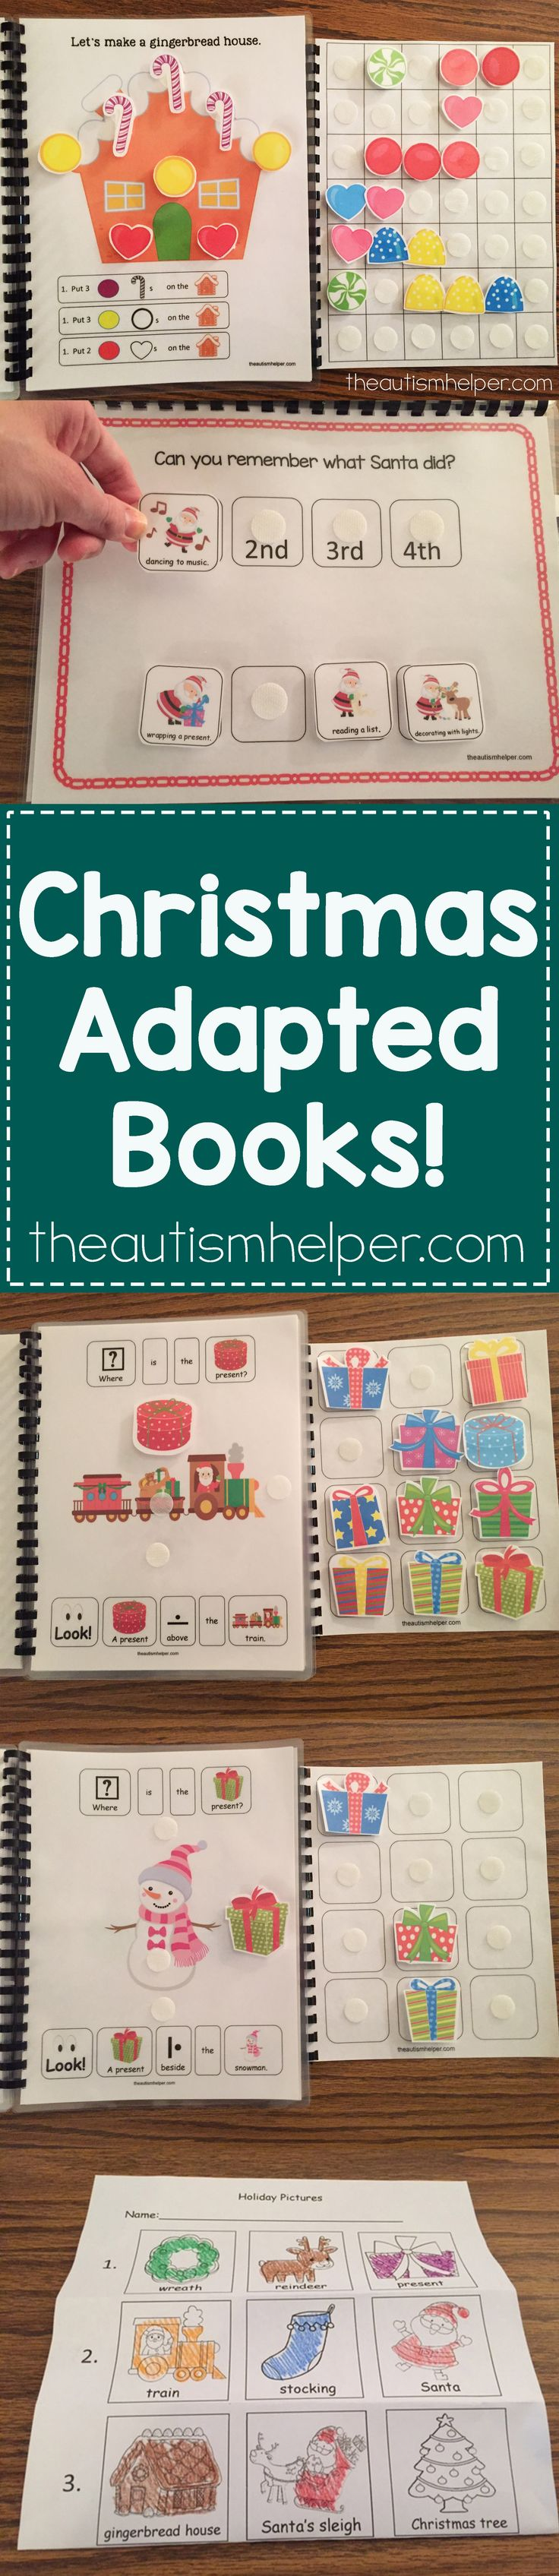 We're sharing Christmas Adapted Books & FREE Christmas Identification Board activity. Don't miss out!! From theautismhelper.com #theautismhelper